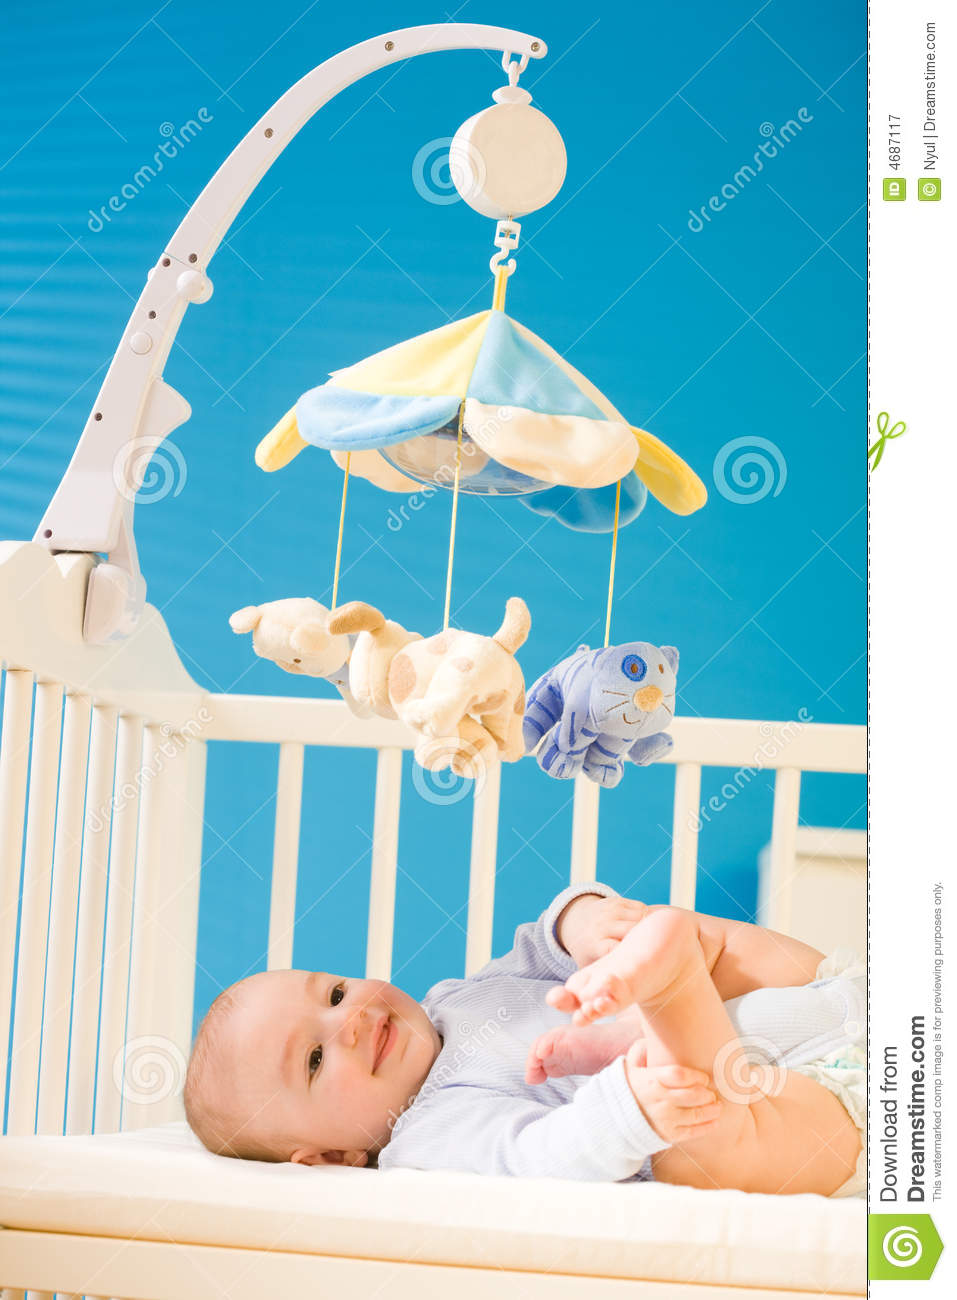 Baby cribs for free - Baby On Crib